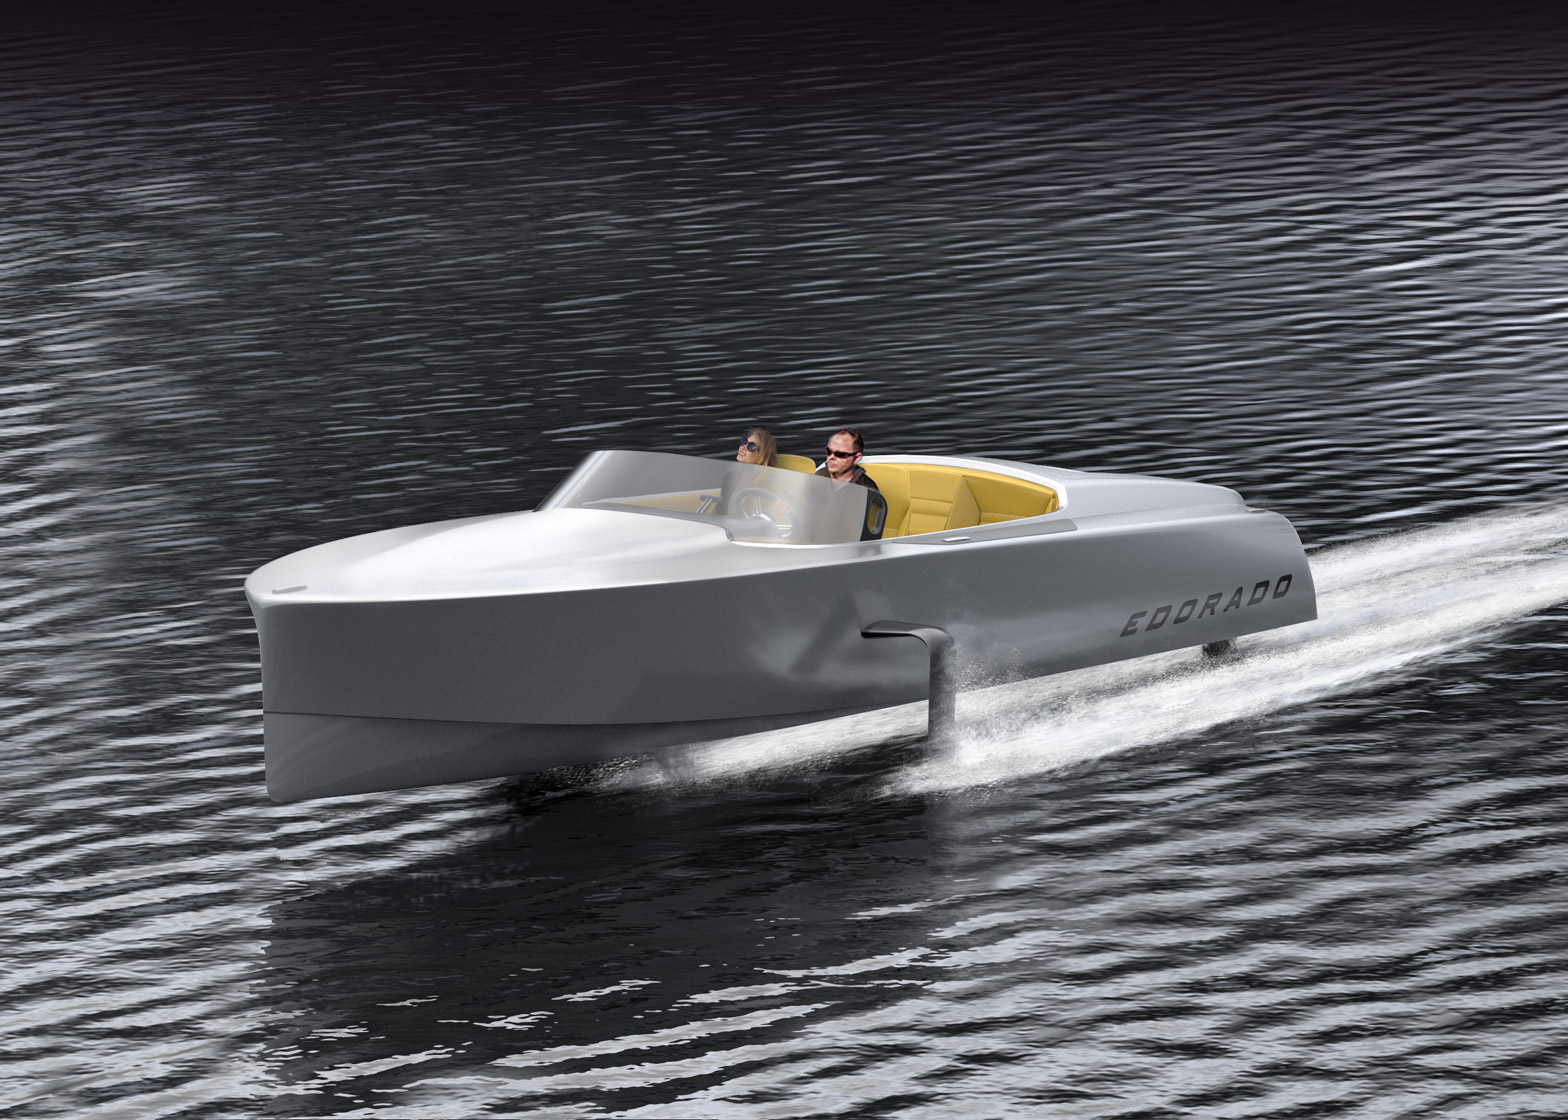 Edorado-S7_electric-powerboat_dezeen_1568_2